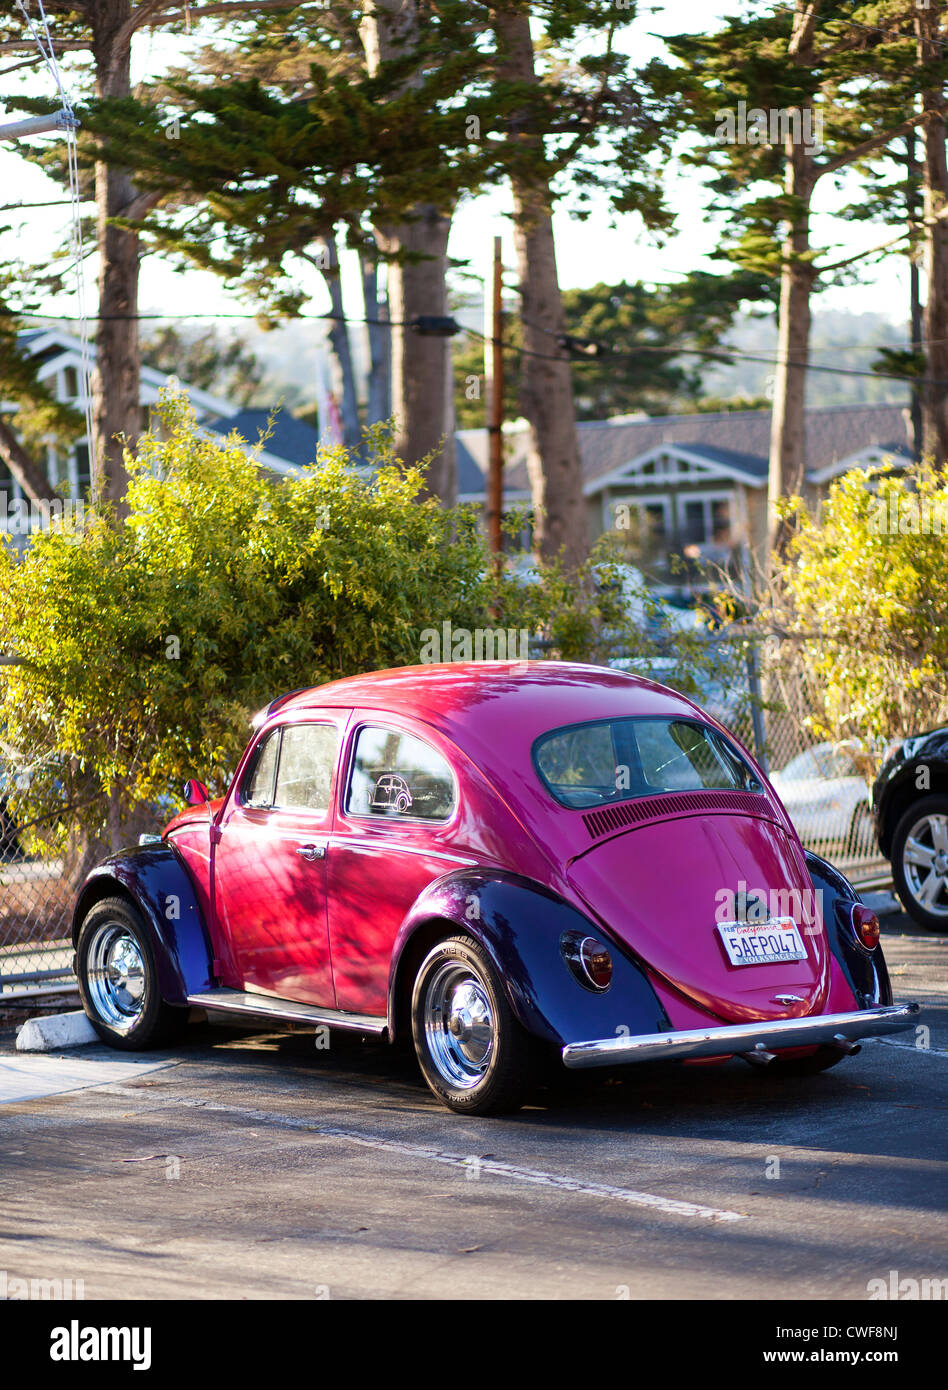 VW Beetle, California - Stock Image